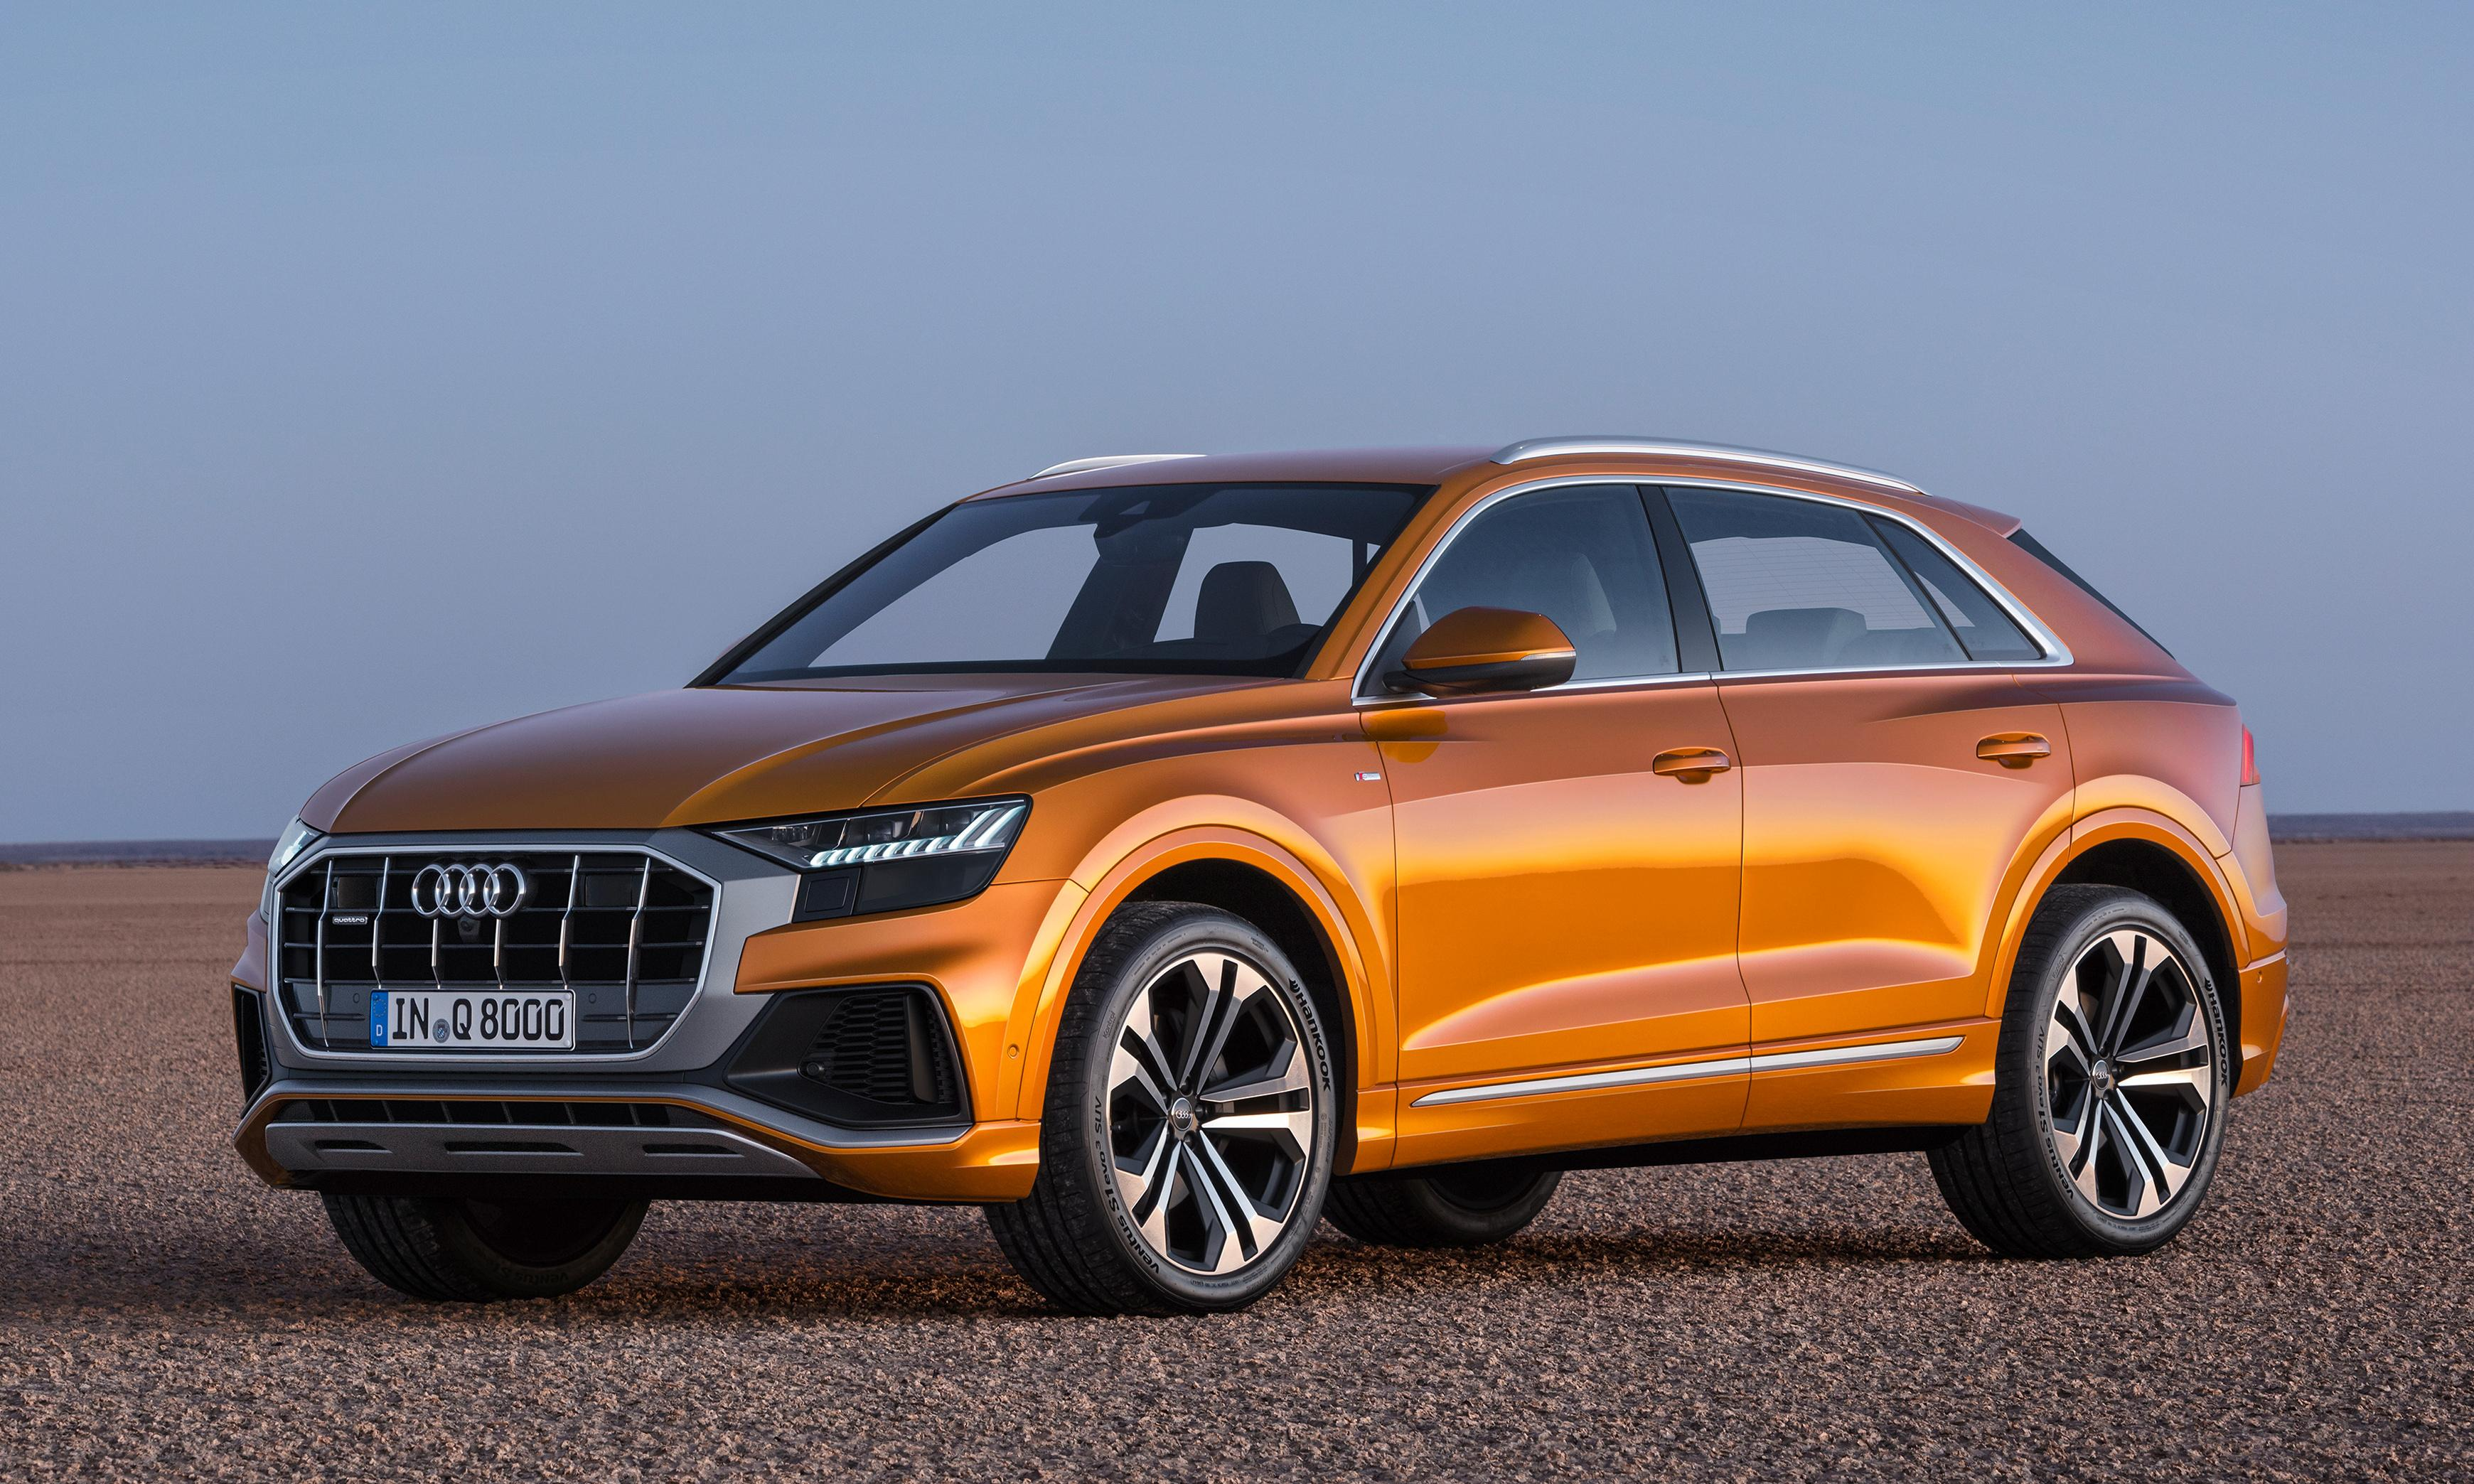 Audi Q8: 'There's nothing it will not do to make you feel more comfortable'